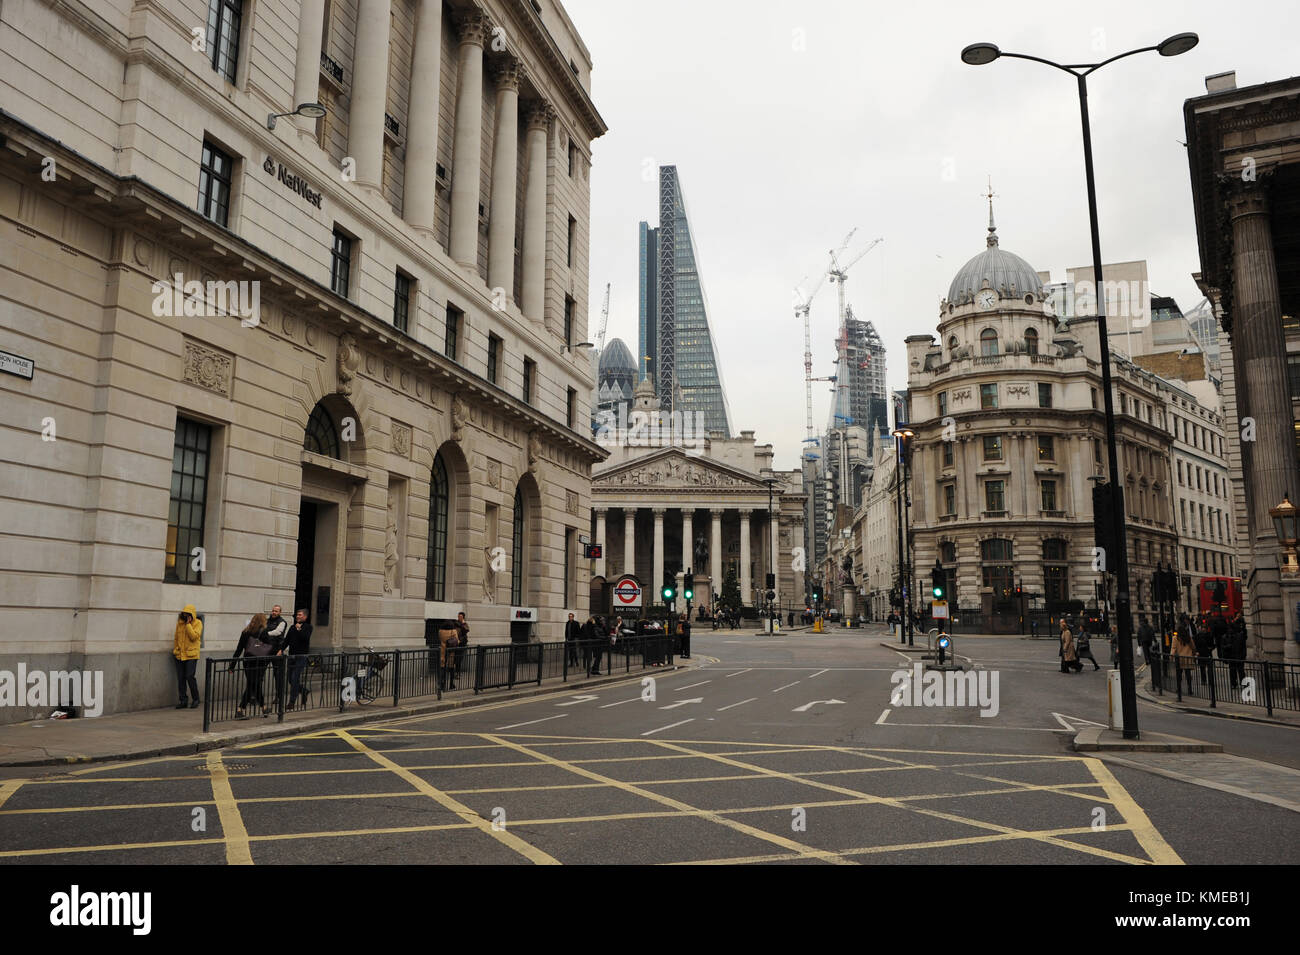 Queen Victoria Street in London England Stock Photo